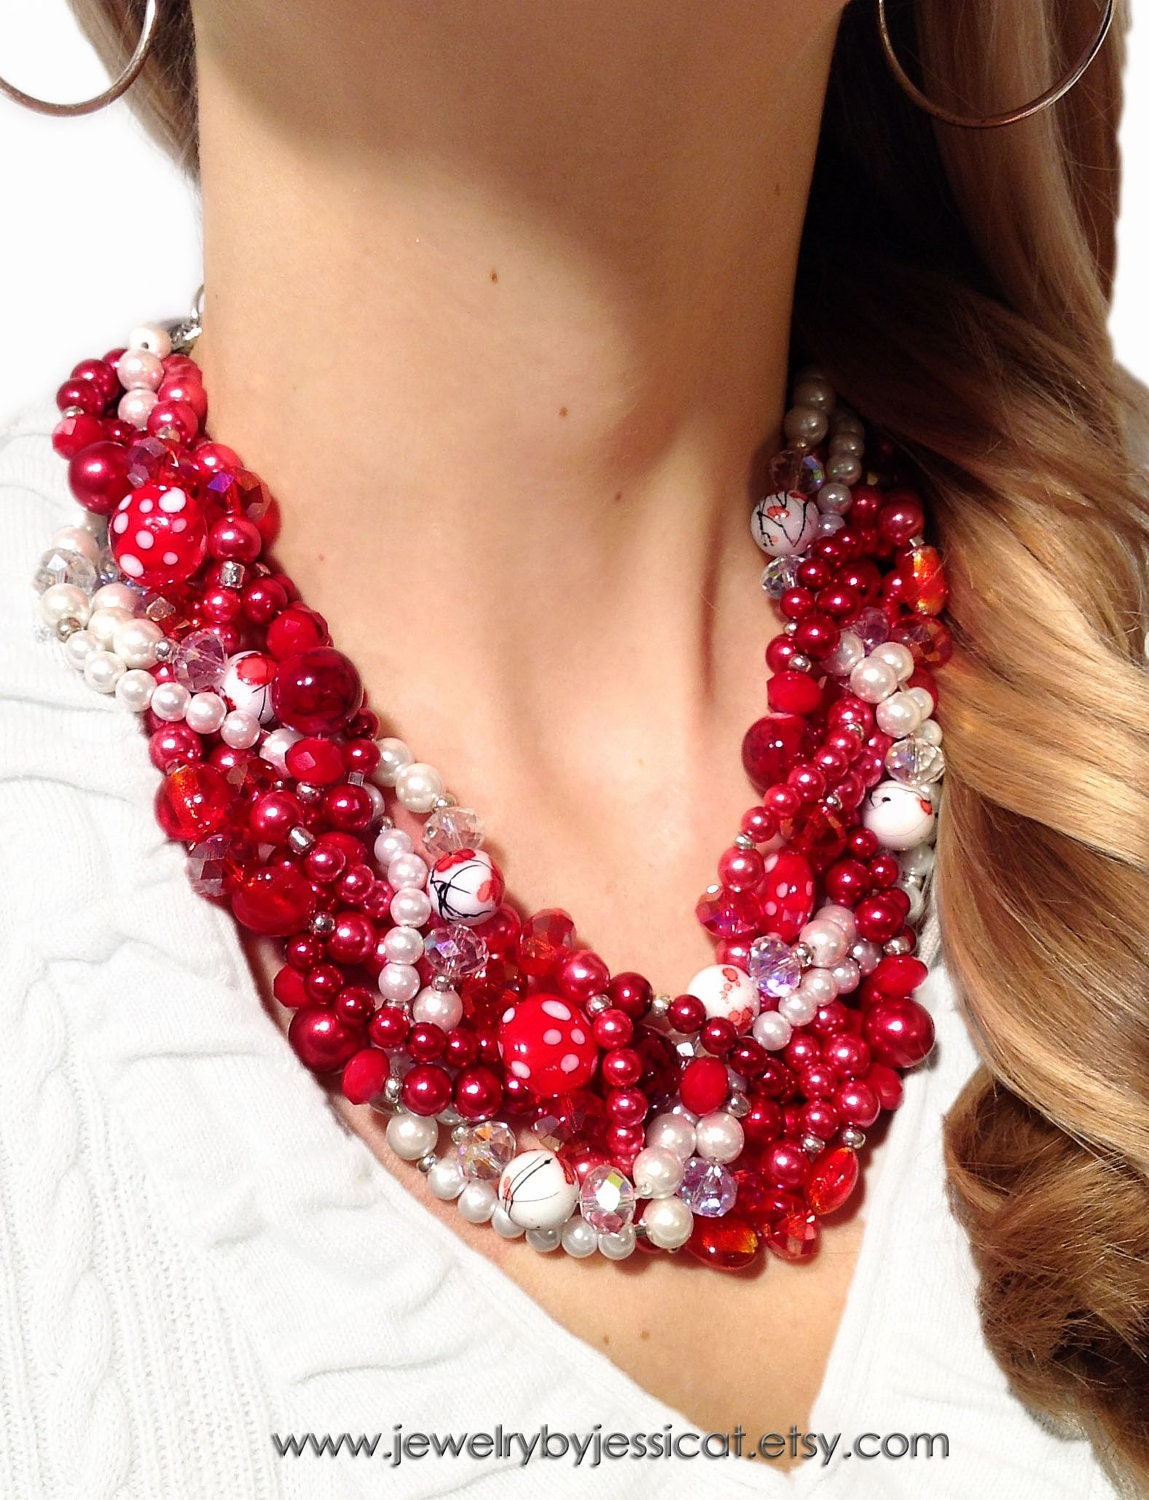 TWISTED, Statement Necklace, Red, White, Deep Red, Ivory, Chunky, Pearls, Bridal, Jewelry by Jessica Theresa